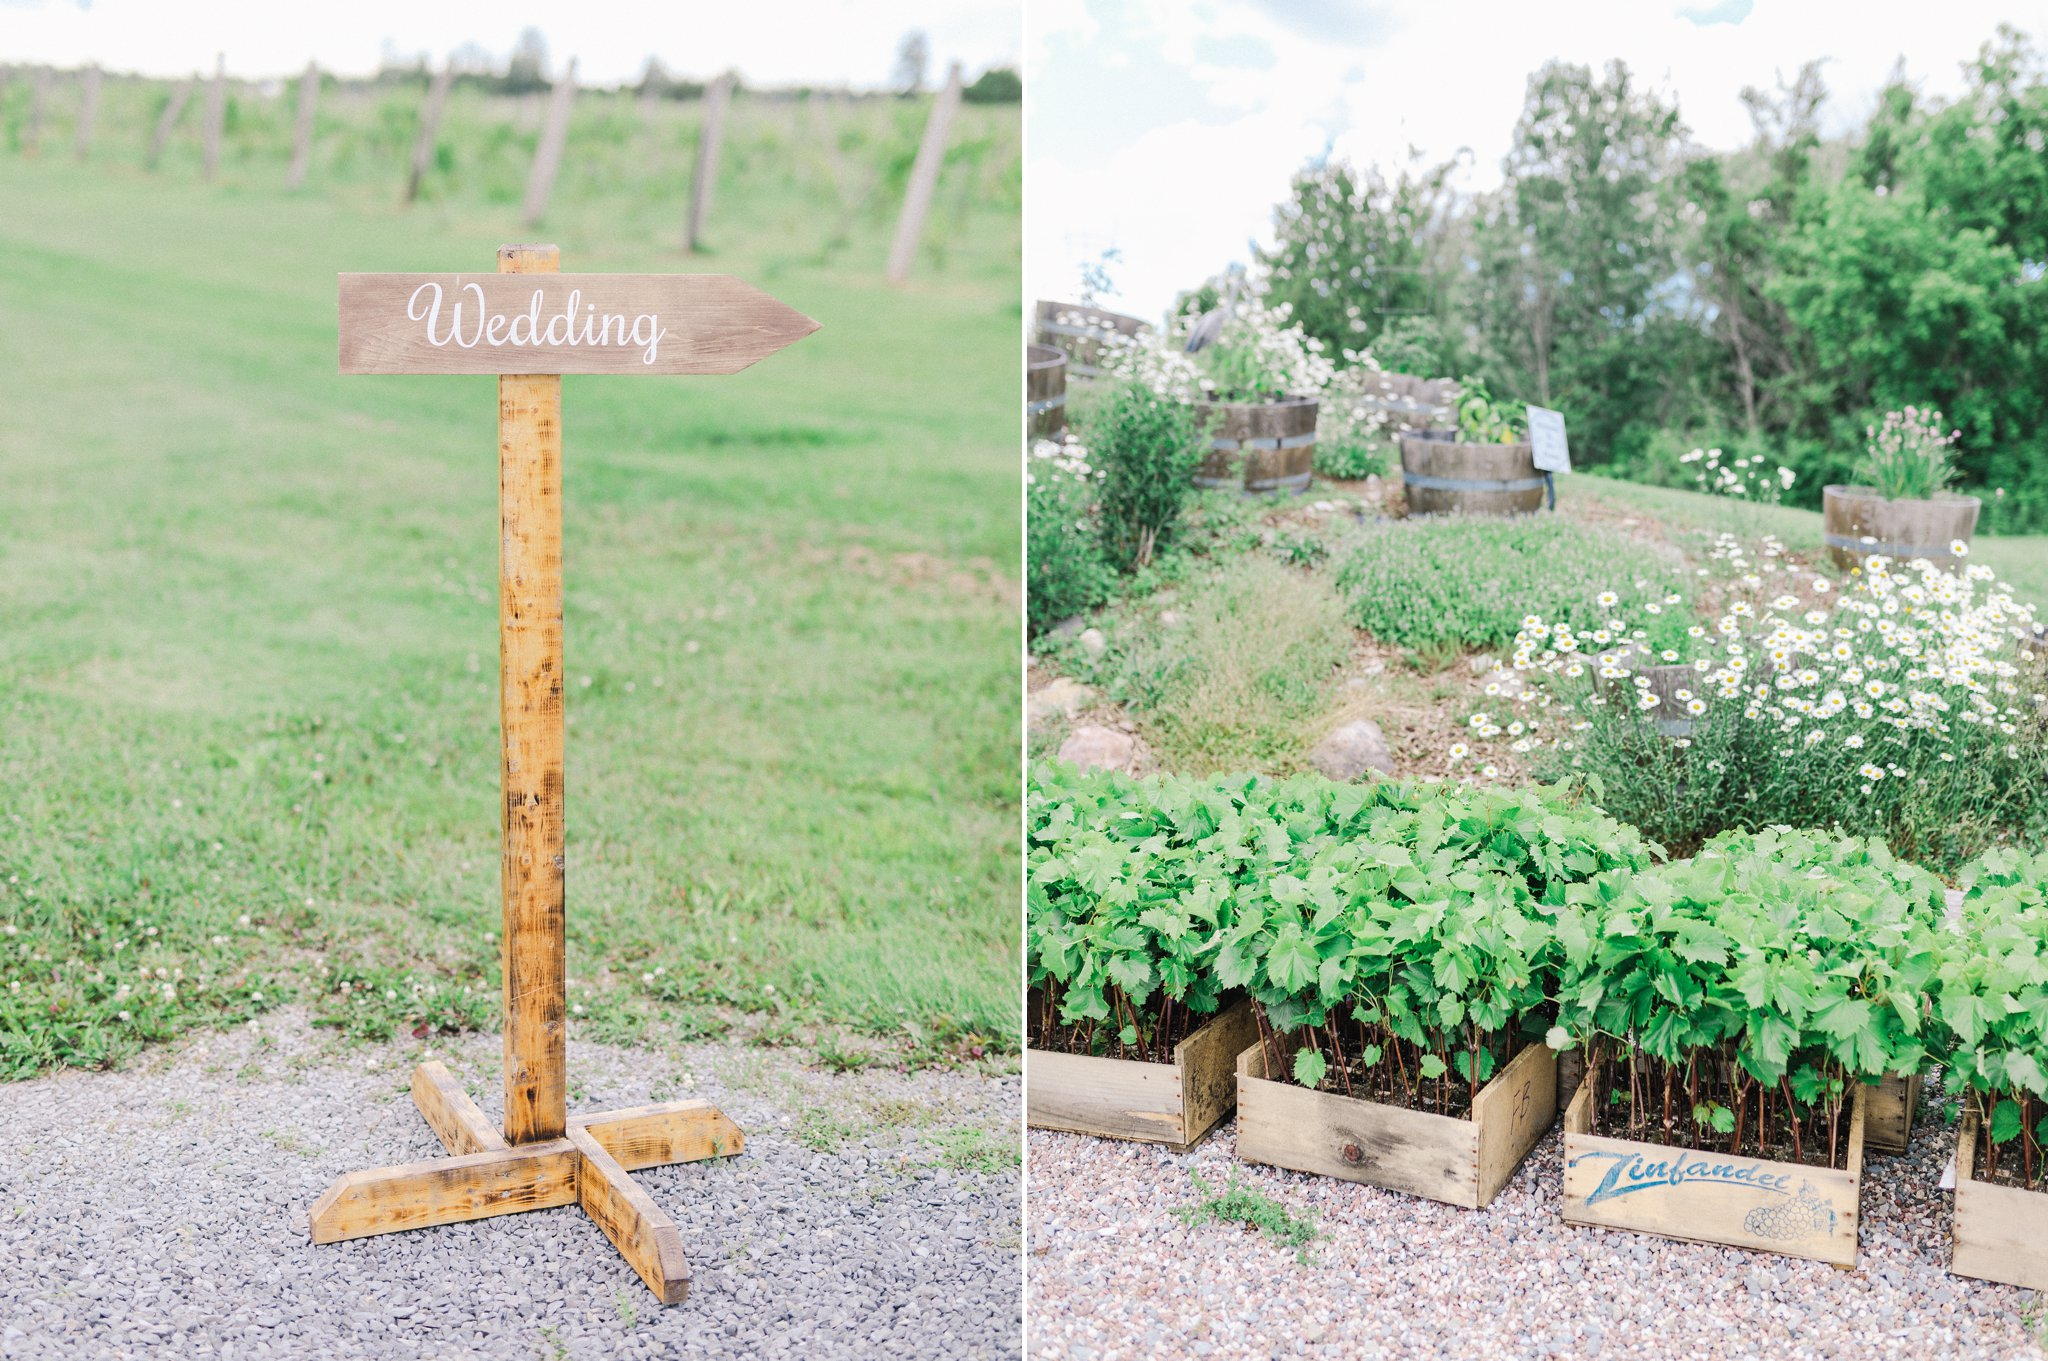 Wine tasting at their Jabulani vineyard wedding photos, Amy Pinder Photography, Ottawa wedding photographer